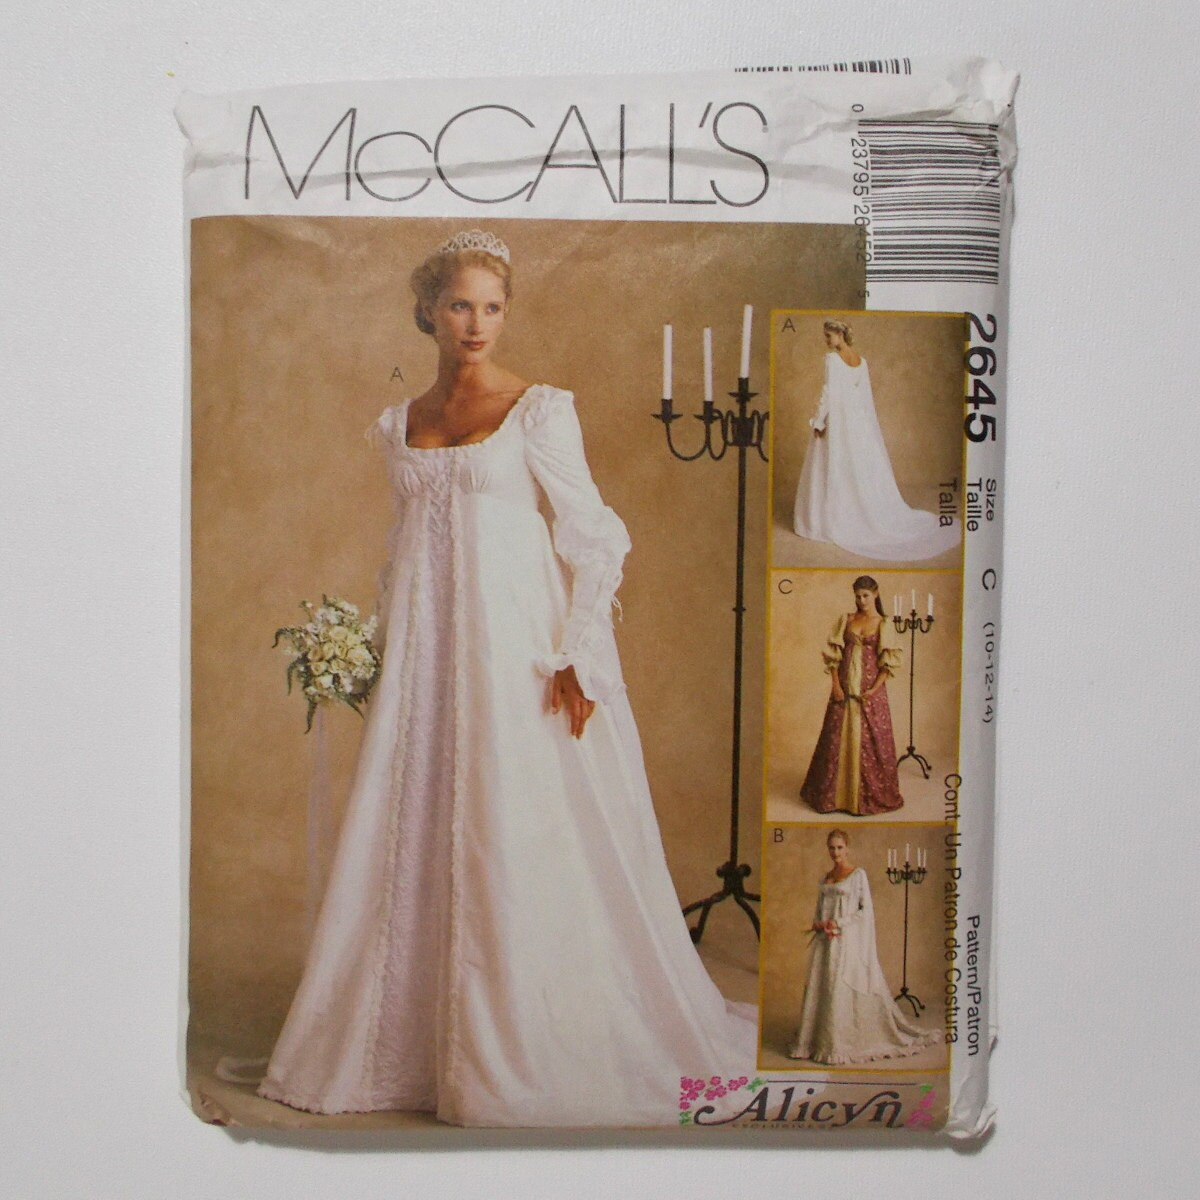 McCalls 2645 Renaissance Bridal Gown Pattern Ren Faire Wedding Theme ...